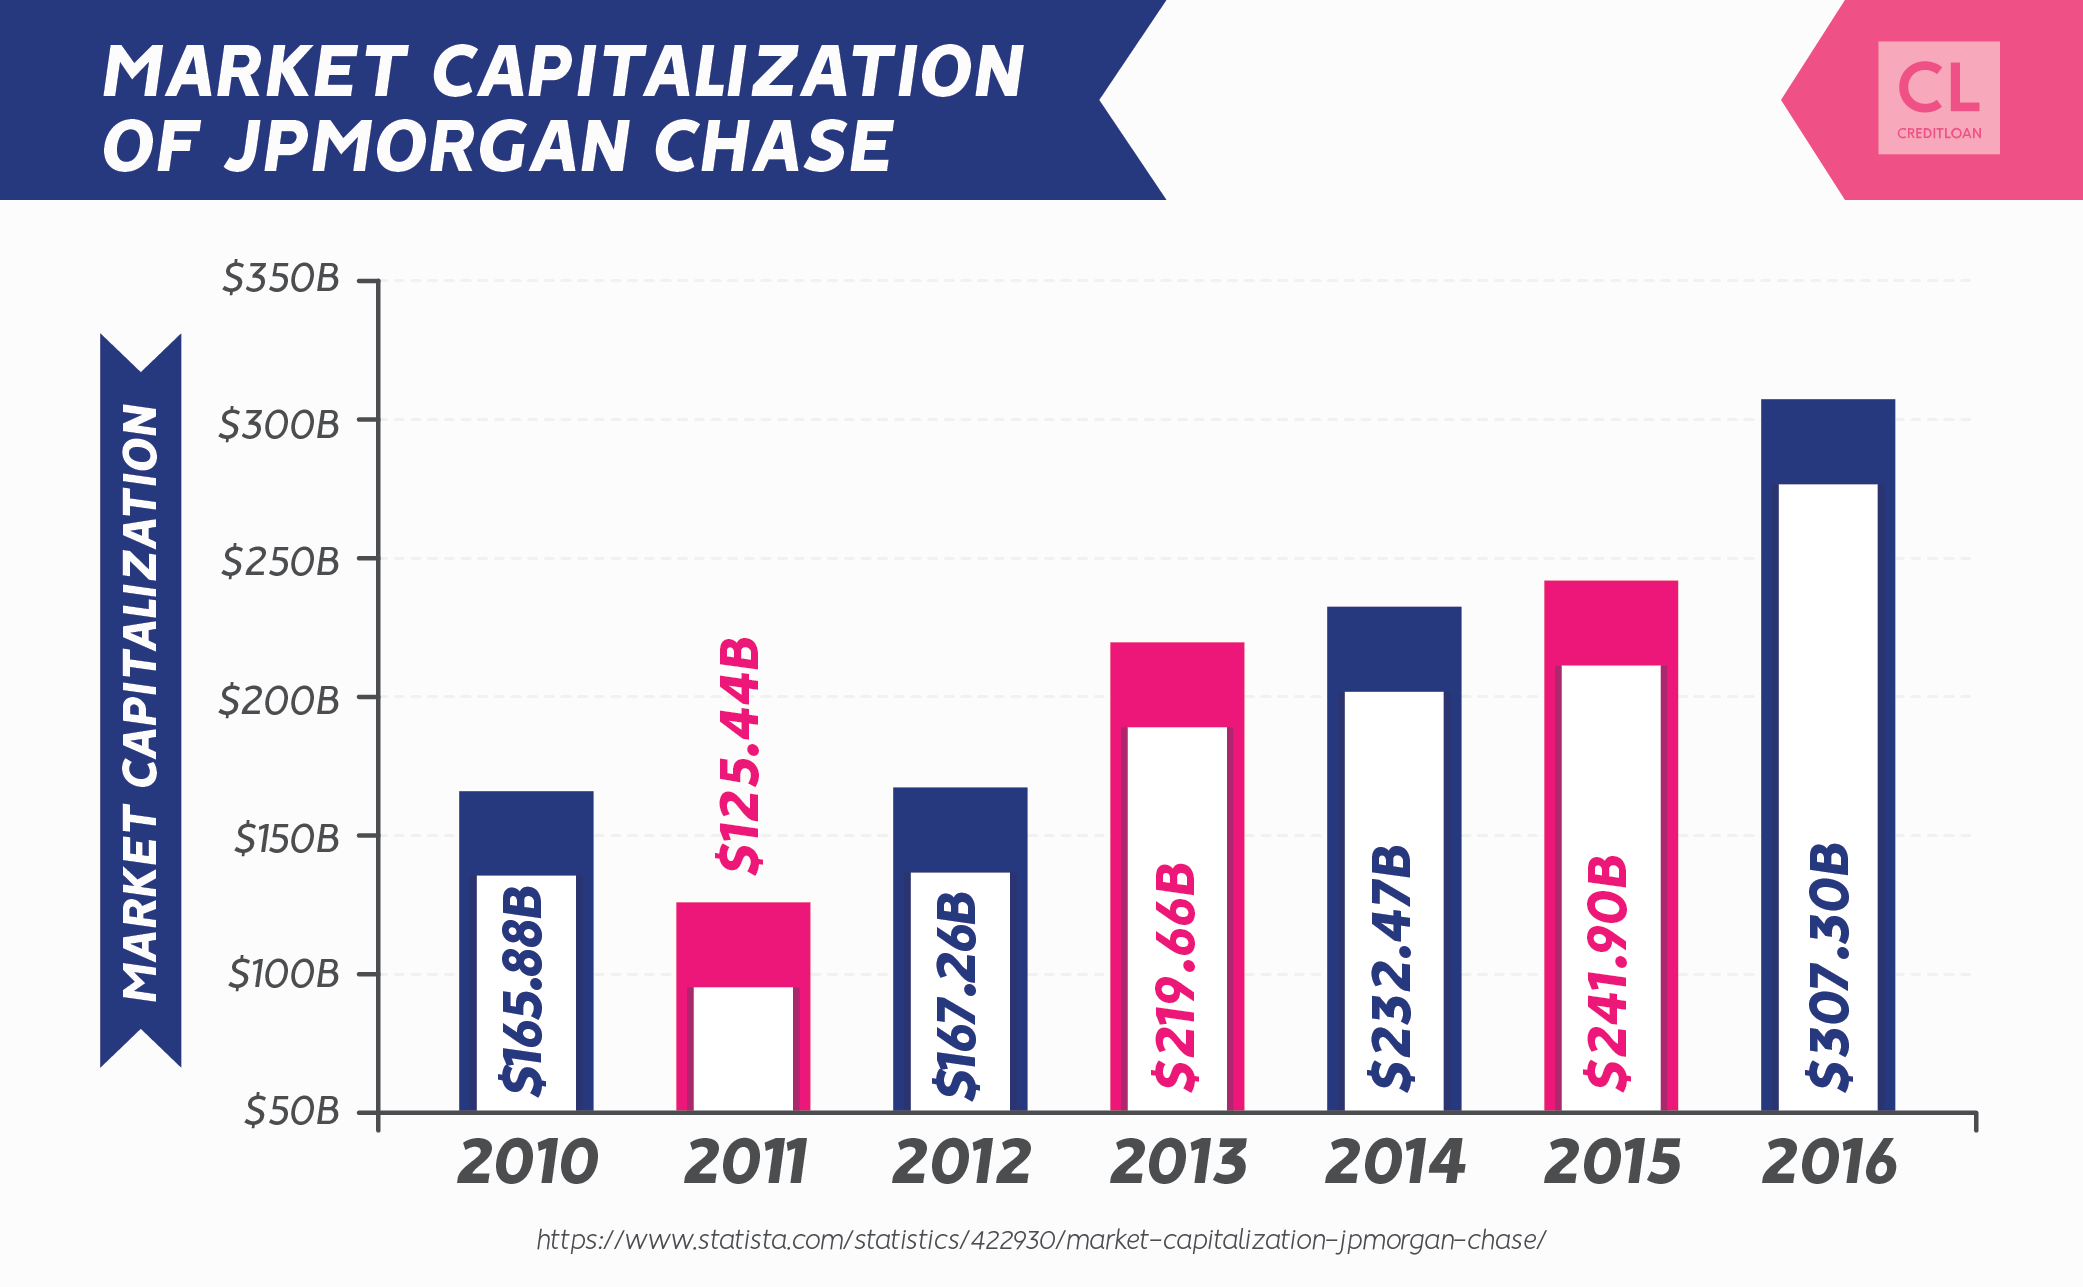 Market Capitalization of JPMorgan Chase from 2010-2016